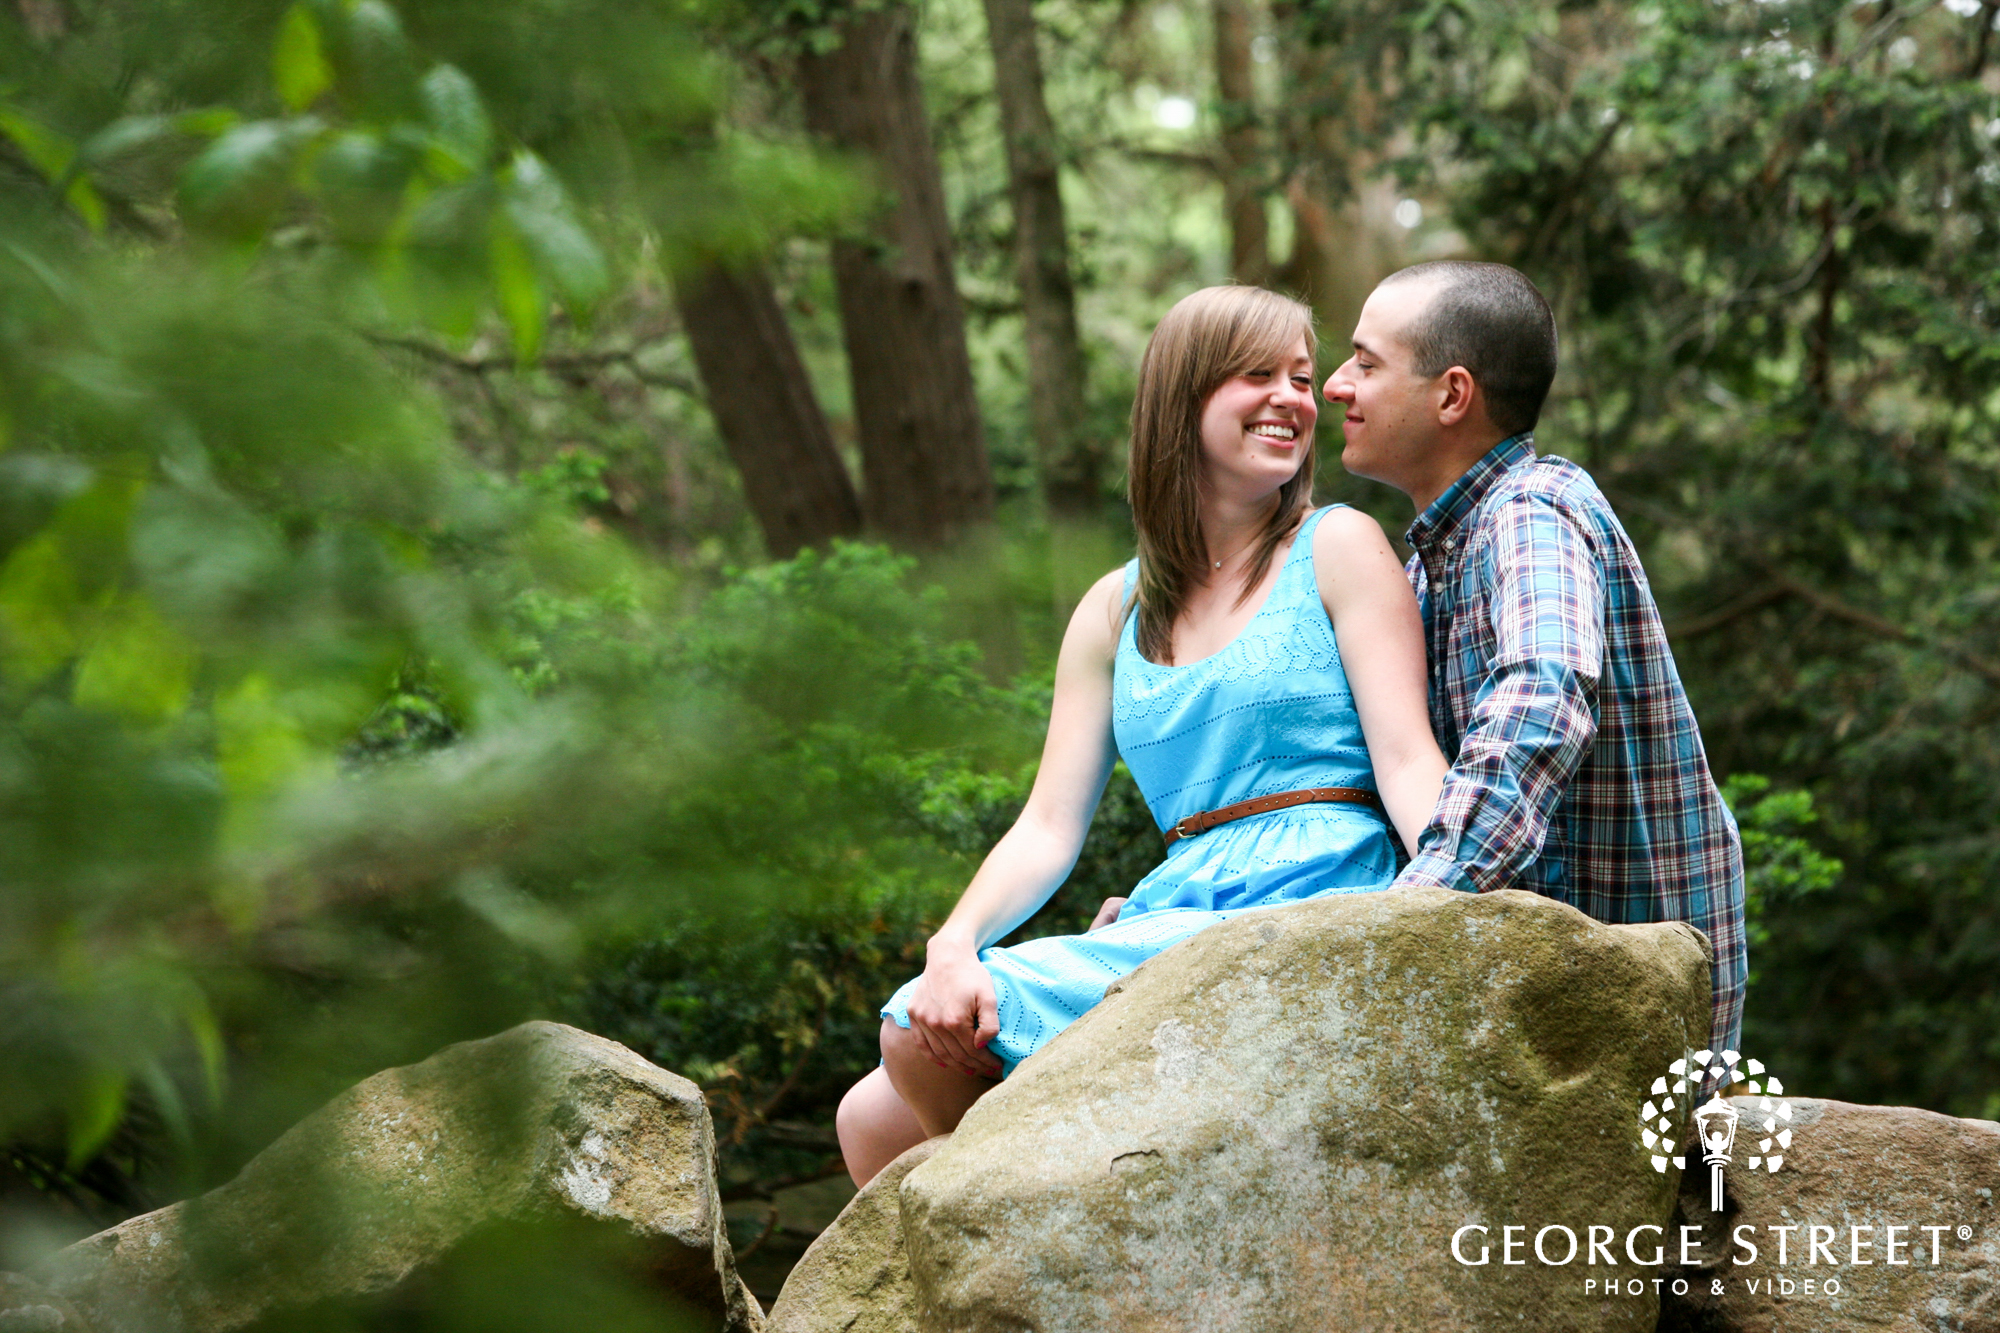 candid couple engagement portrait in forrest setting